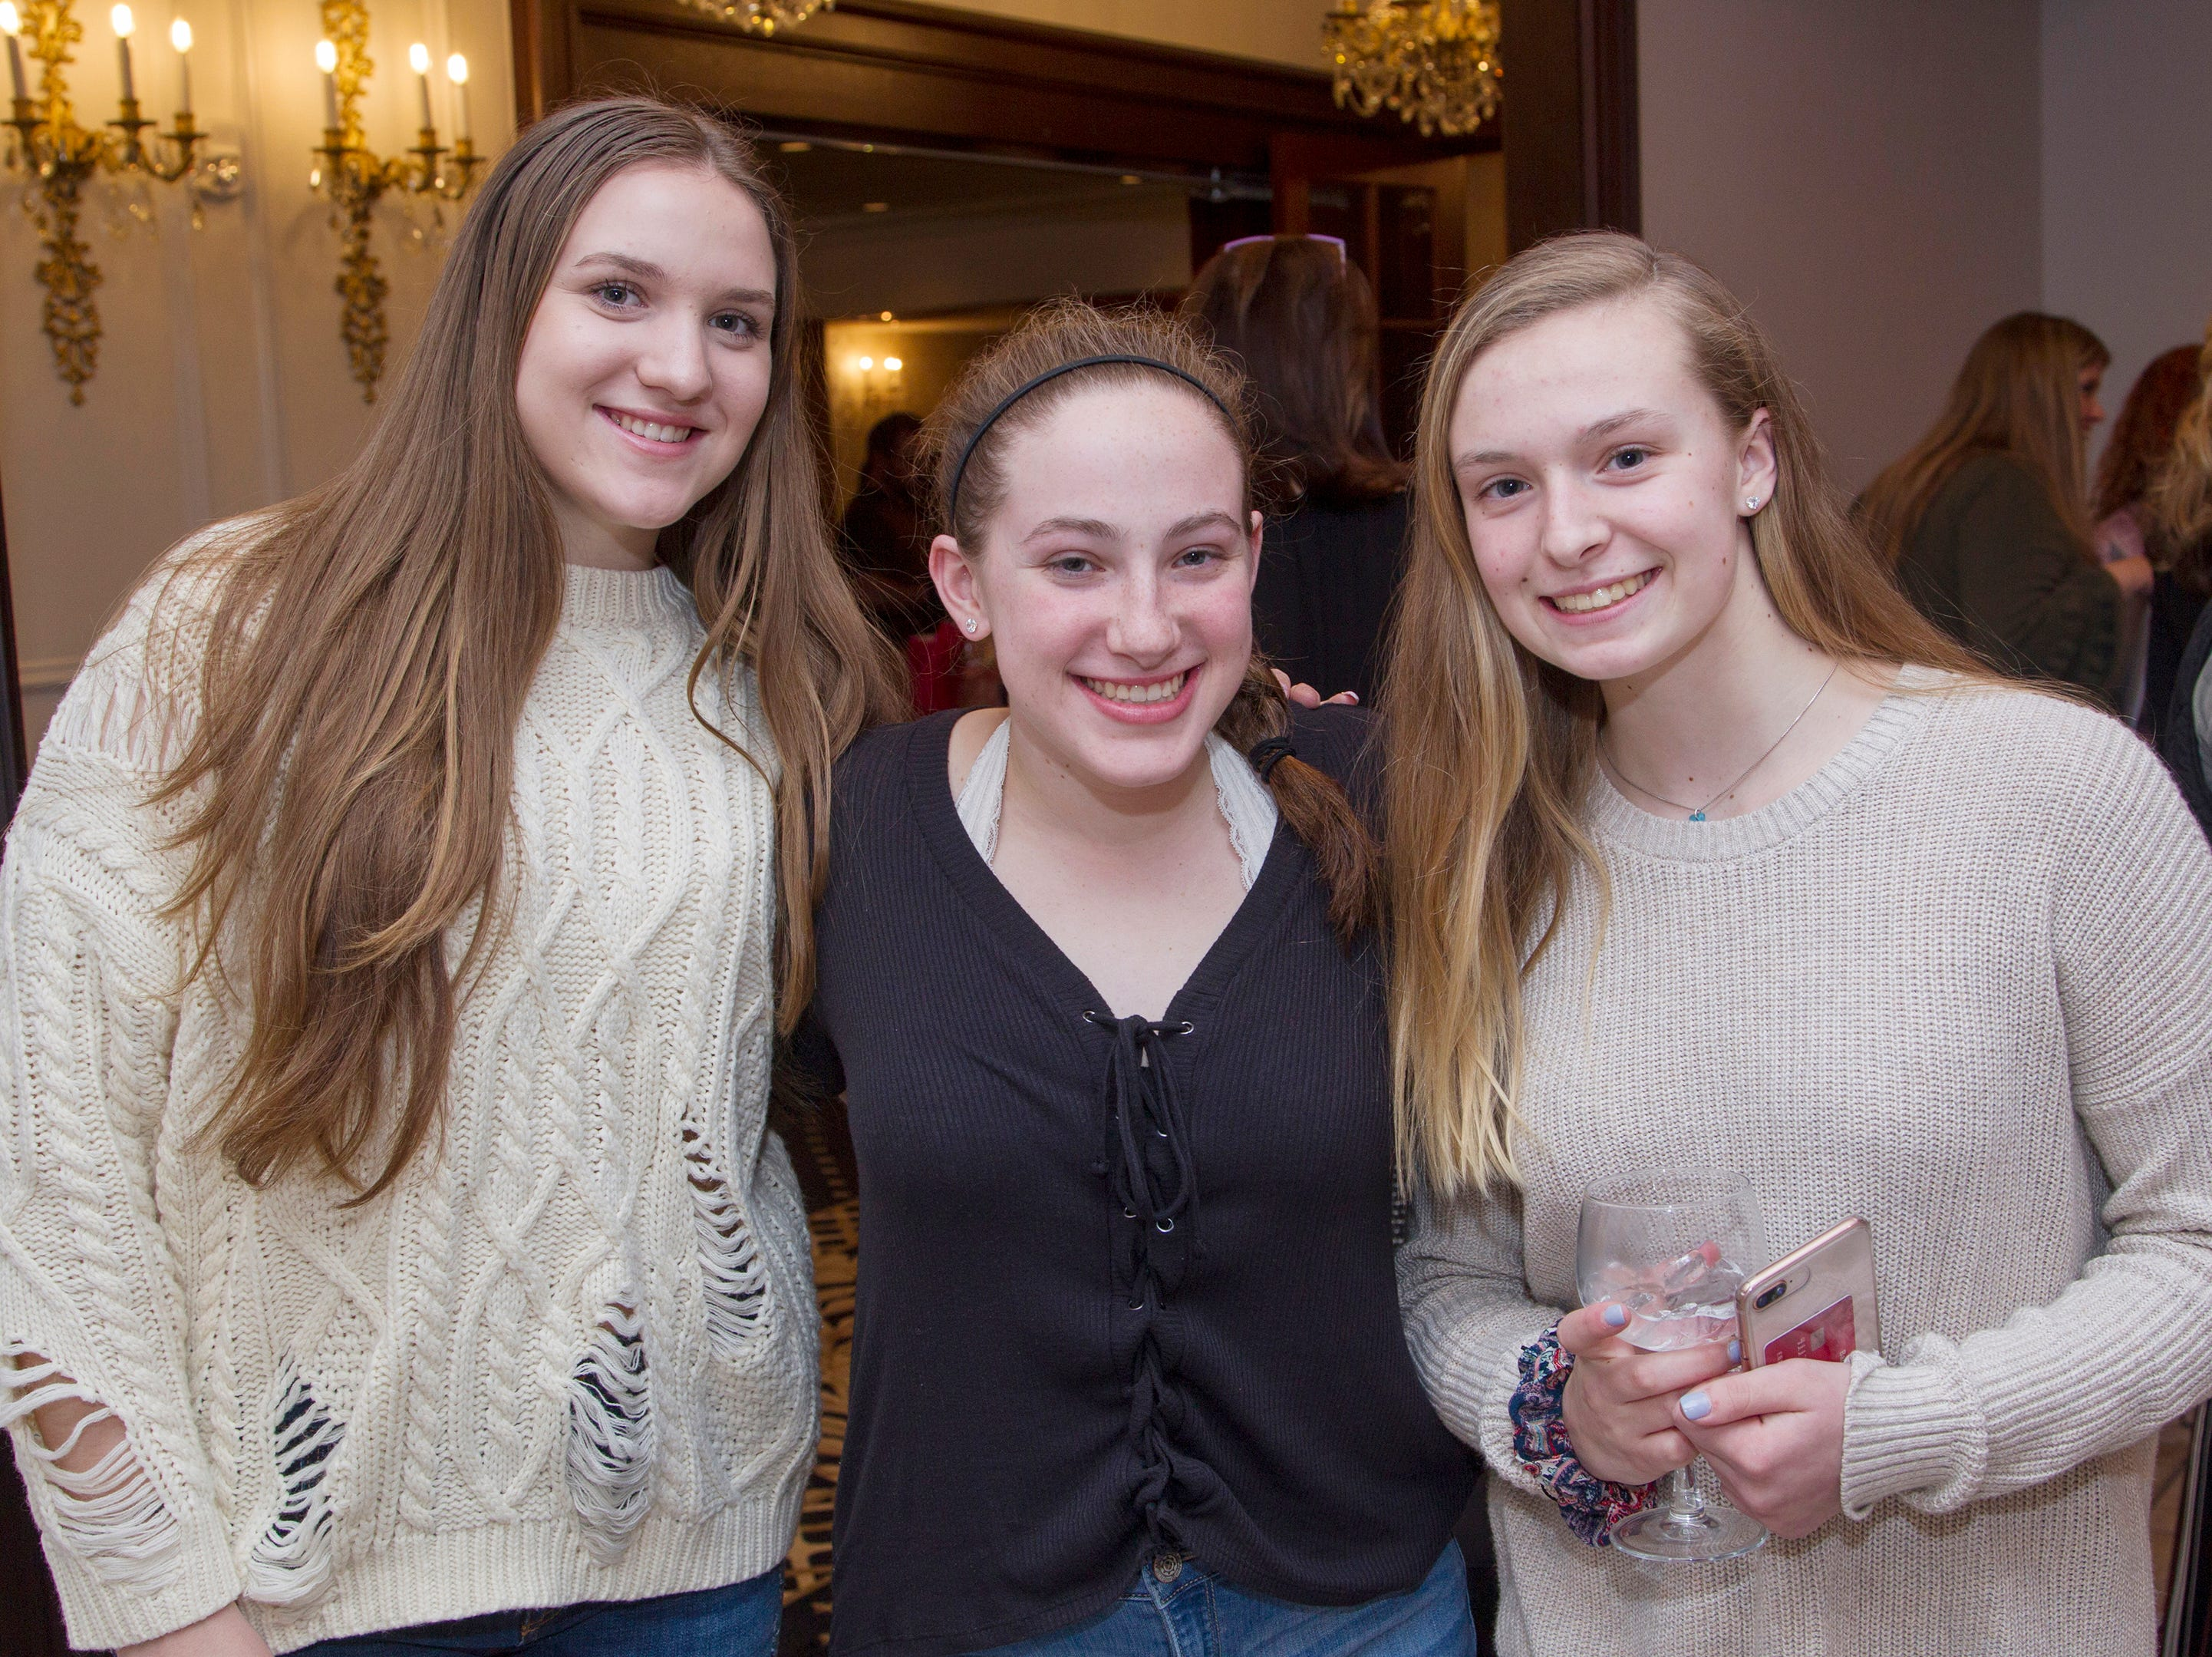 Grace, Emma, Emily. Waldwick High School held its Project Graduation Fashion Show at Macaluso's in Hawthorne. 03/13/2019